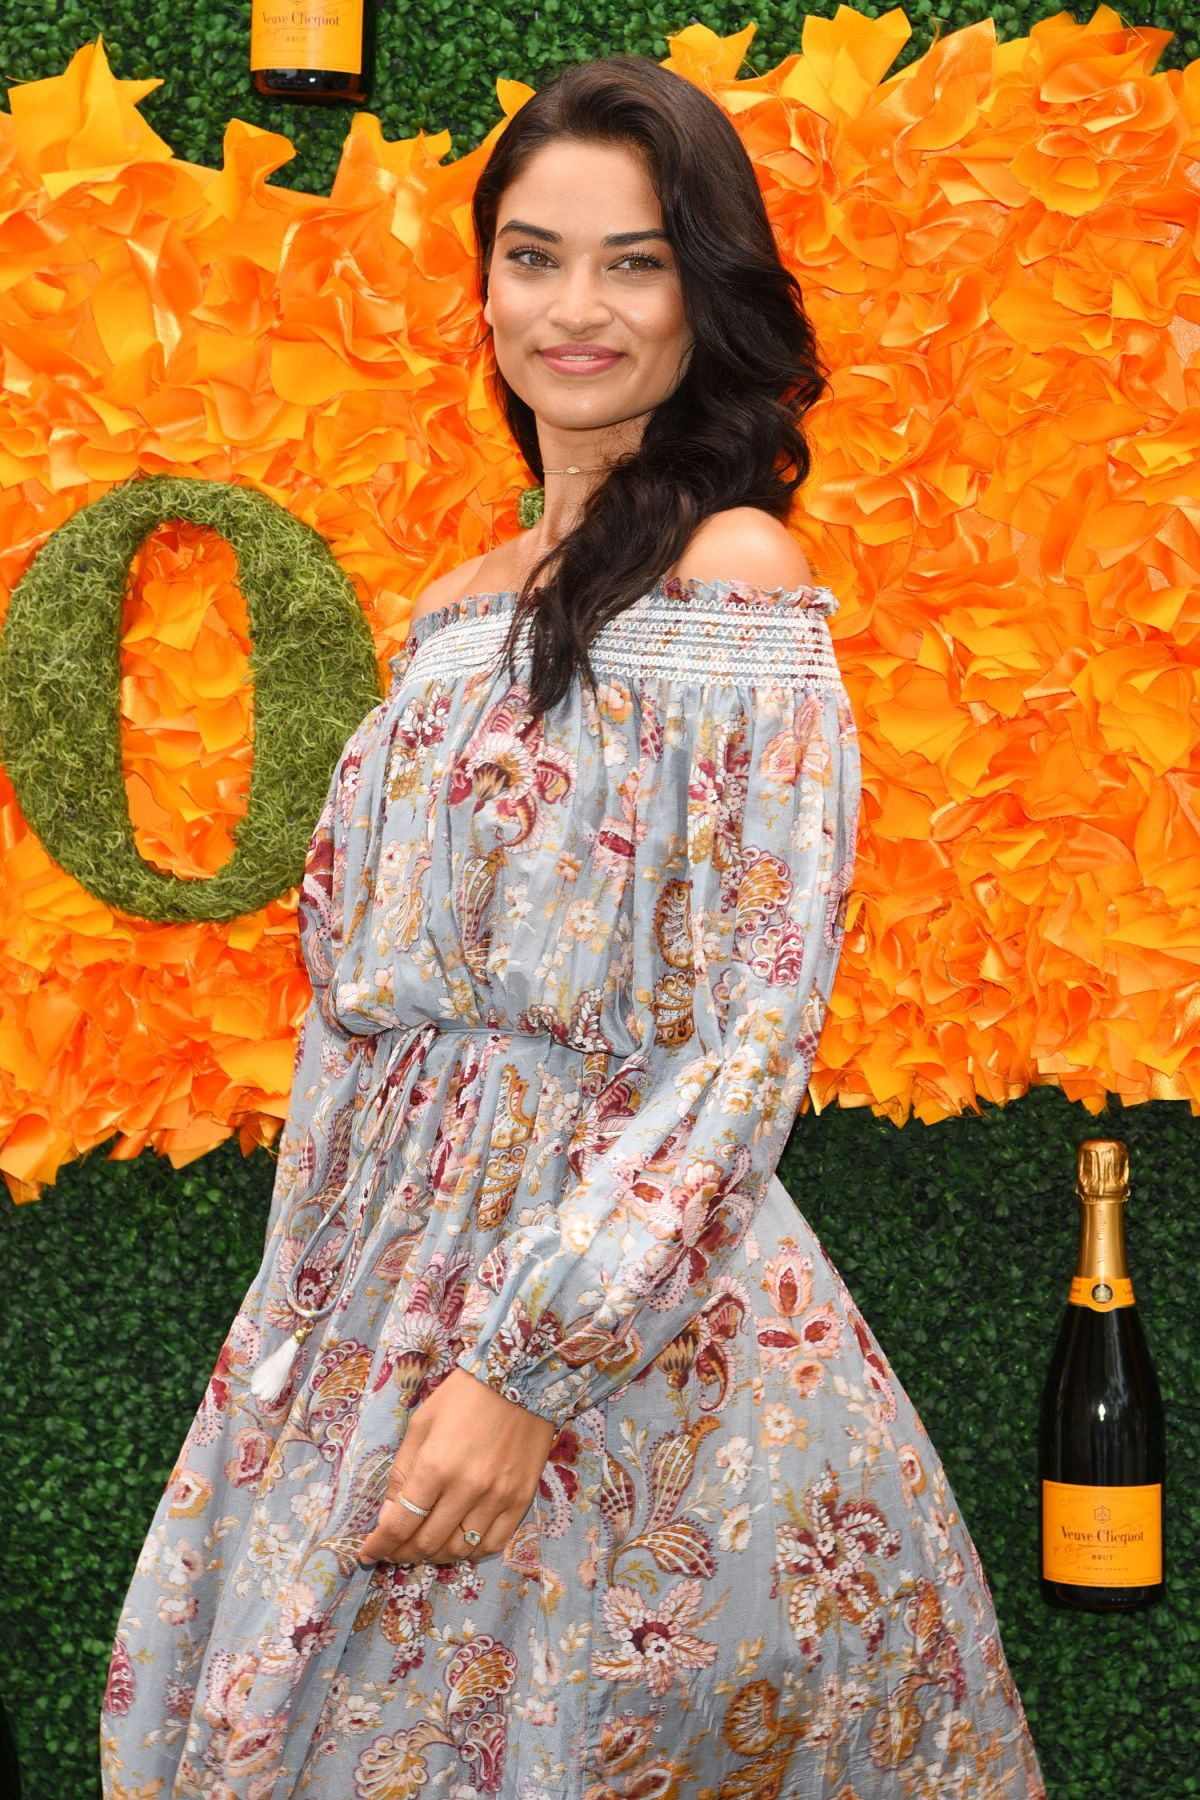 SHANINA SHAIK at 9th Annual Veuve Clicquot Polo Classic in Jersey City 06/04/2016